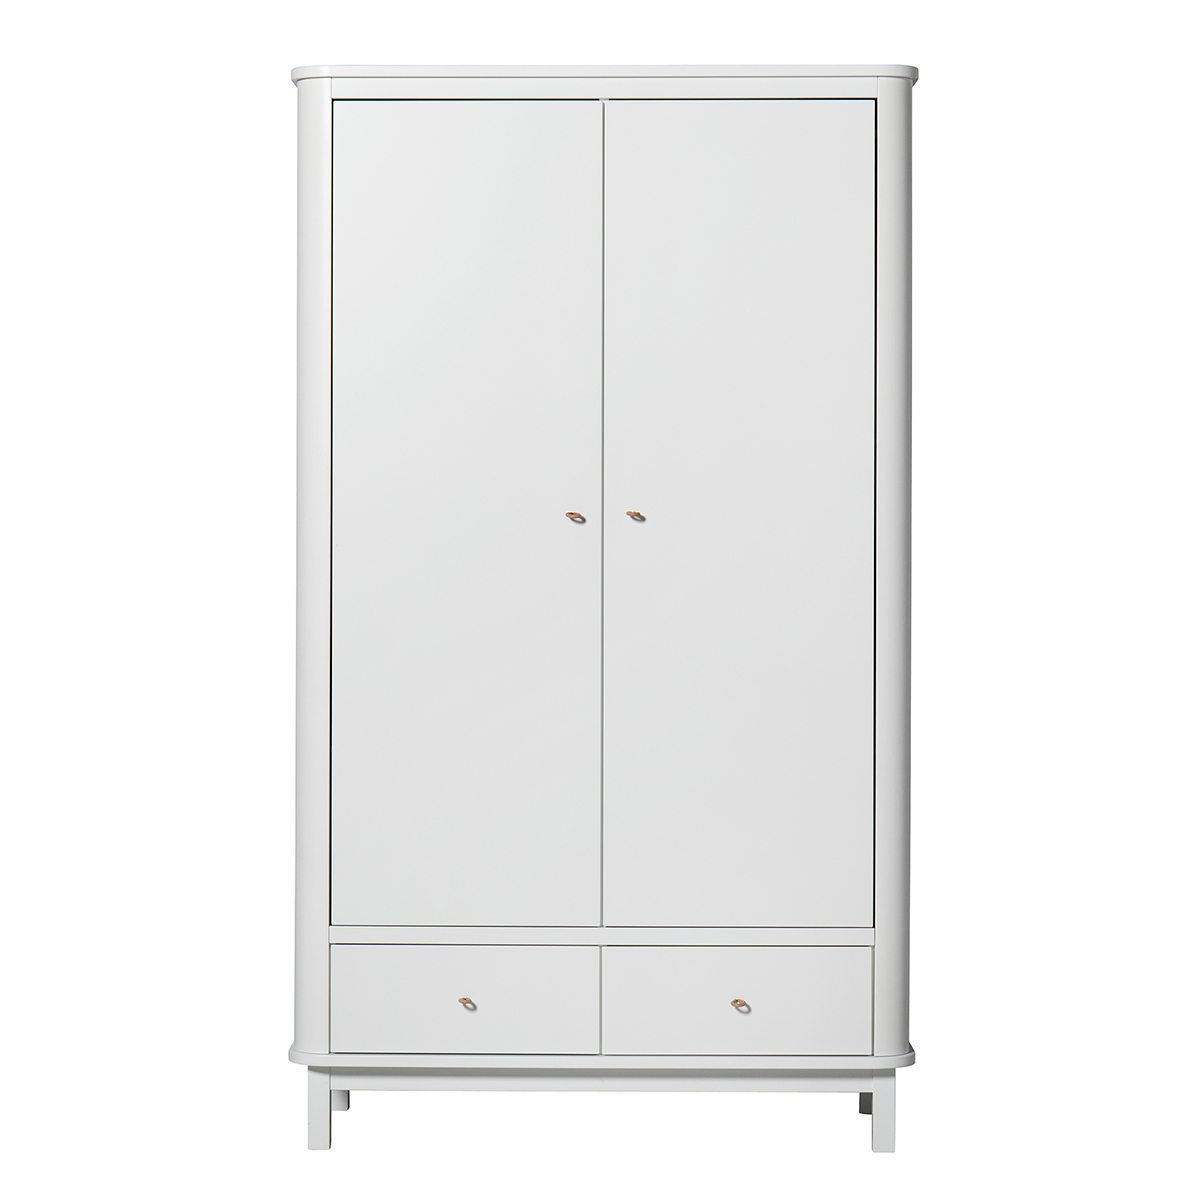 Oliver Furniture Kinderkledingkasten Wood white 2 deuren